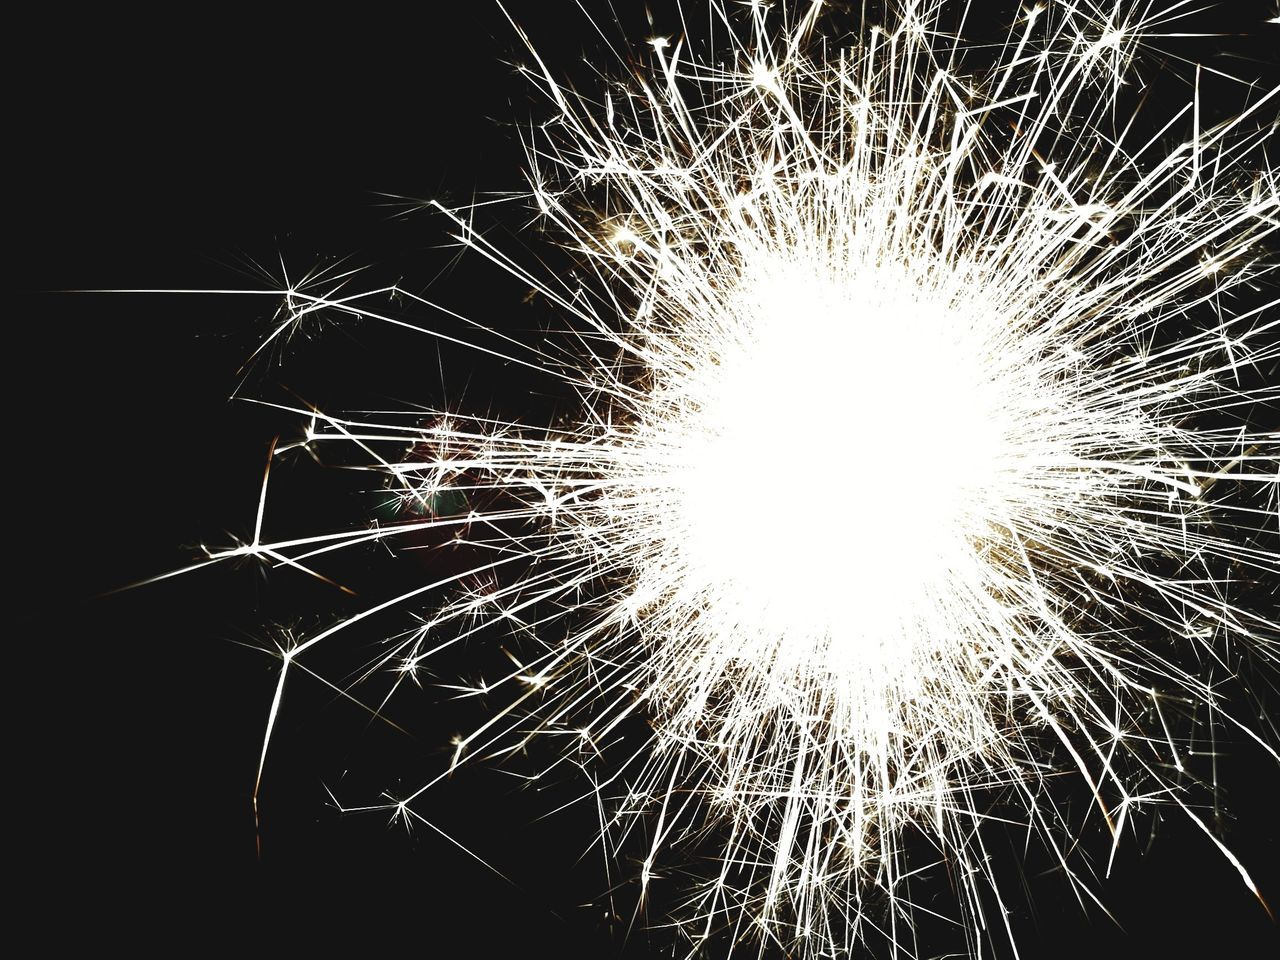 firework display, night, firework - man made object, exploding, celebration, long exposure, arts culture and entertainment, no people, close-up, event, low angle view, sparkler, firework, outdoors, illuminated, black background, sky